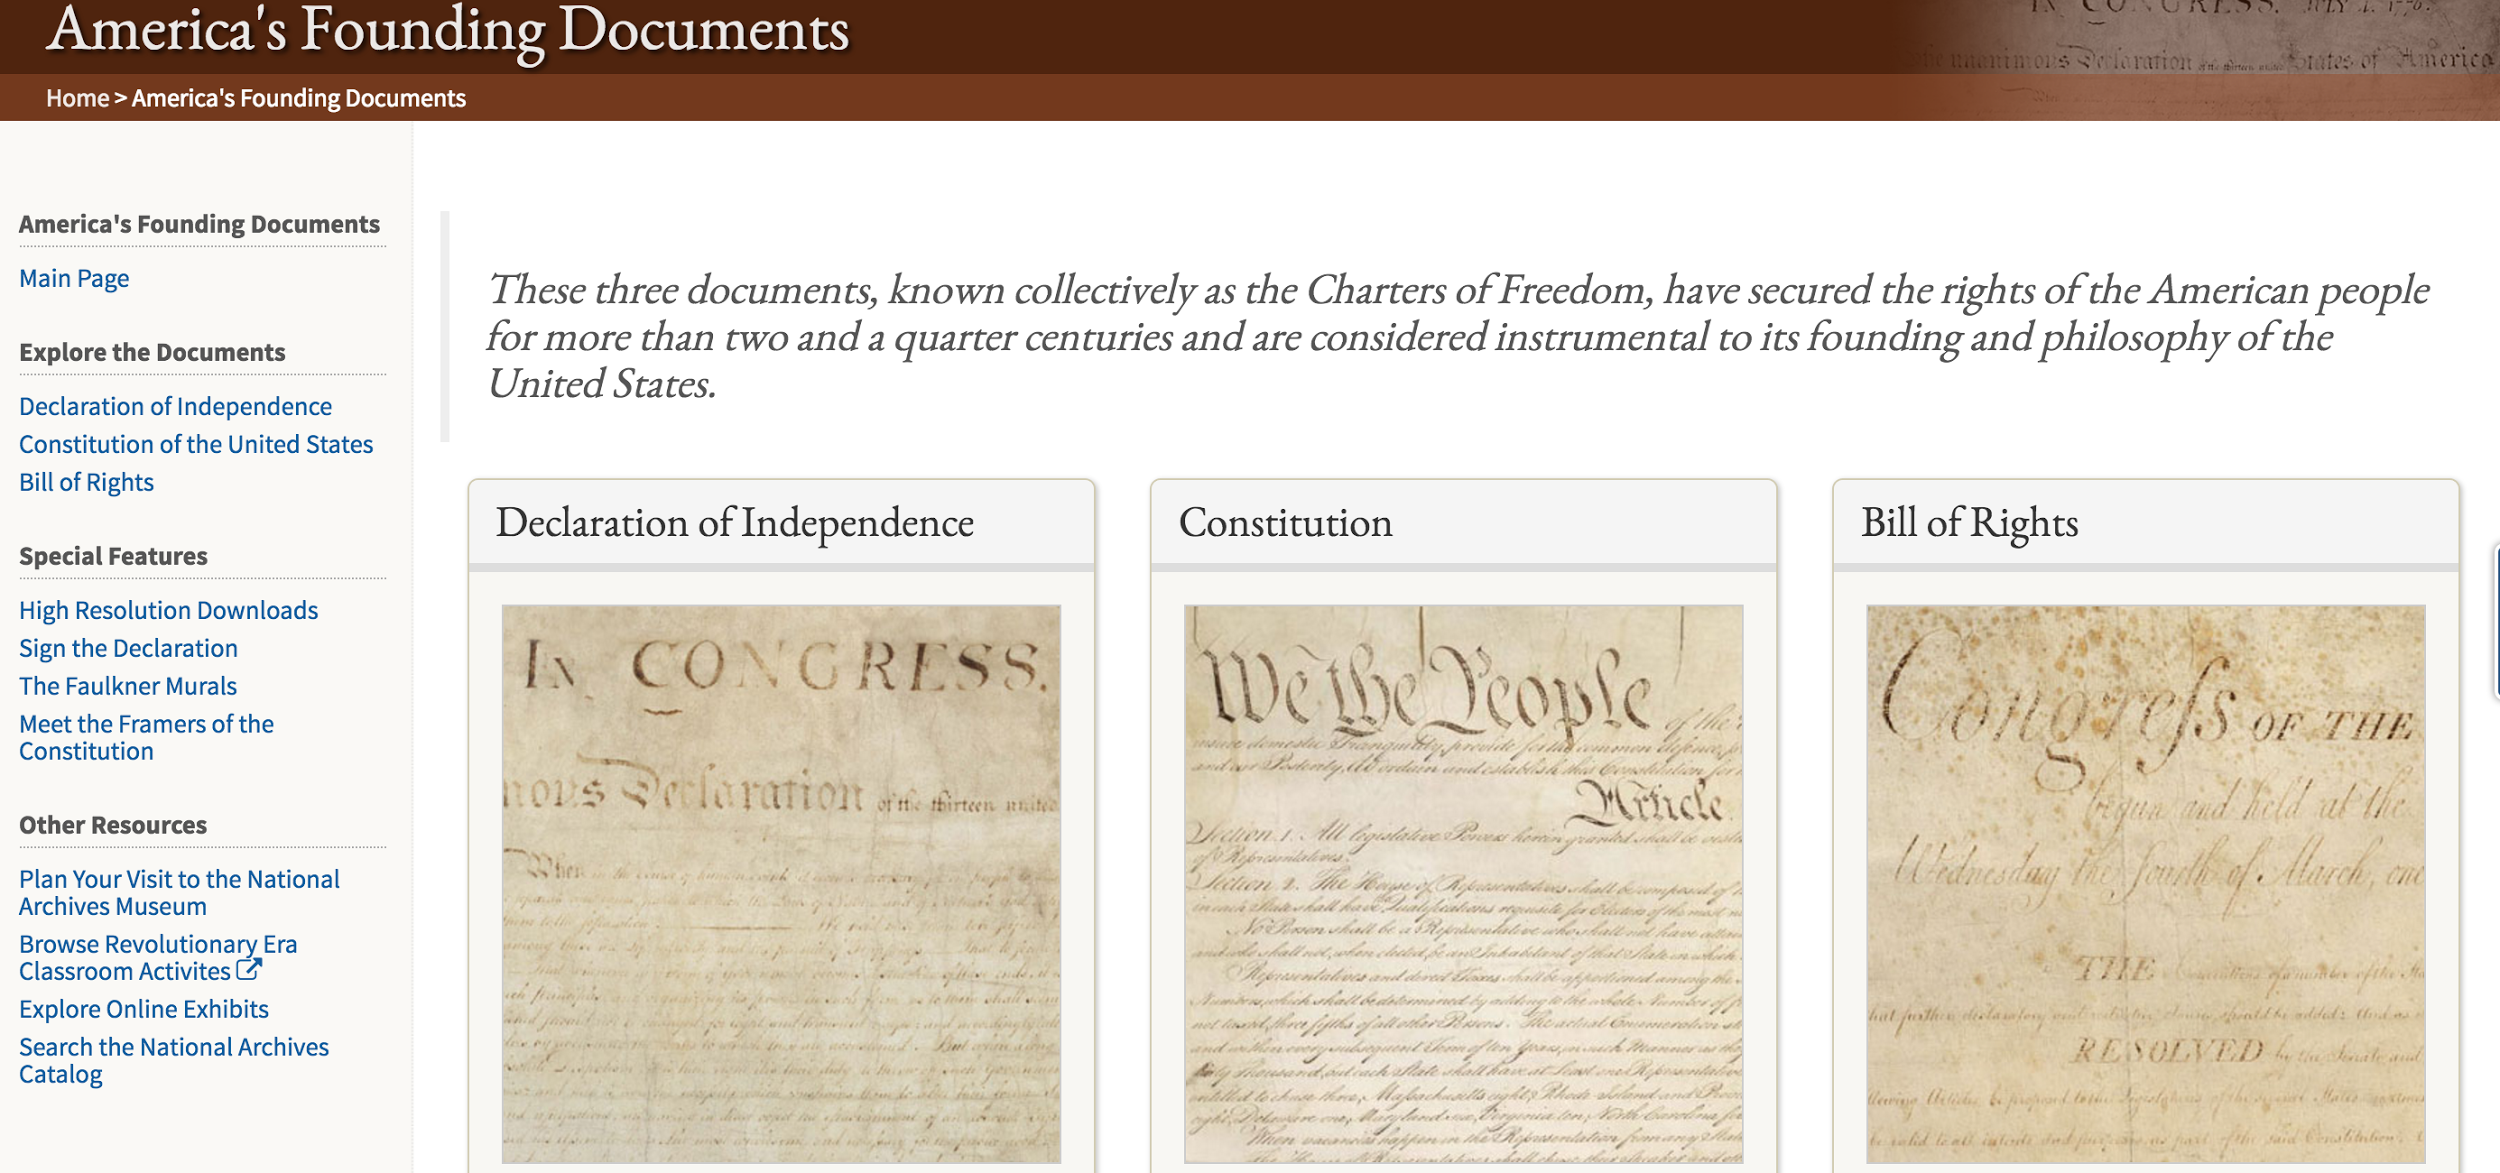 America's Founding Documents page screenshot